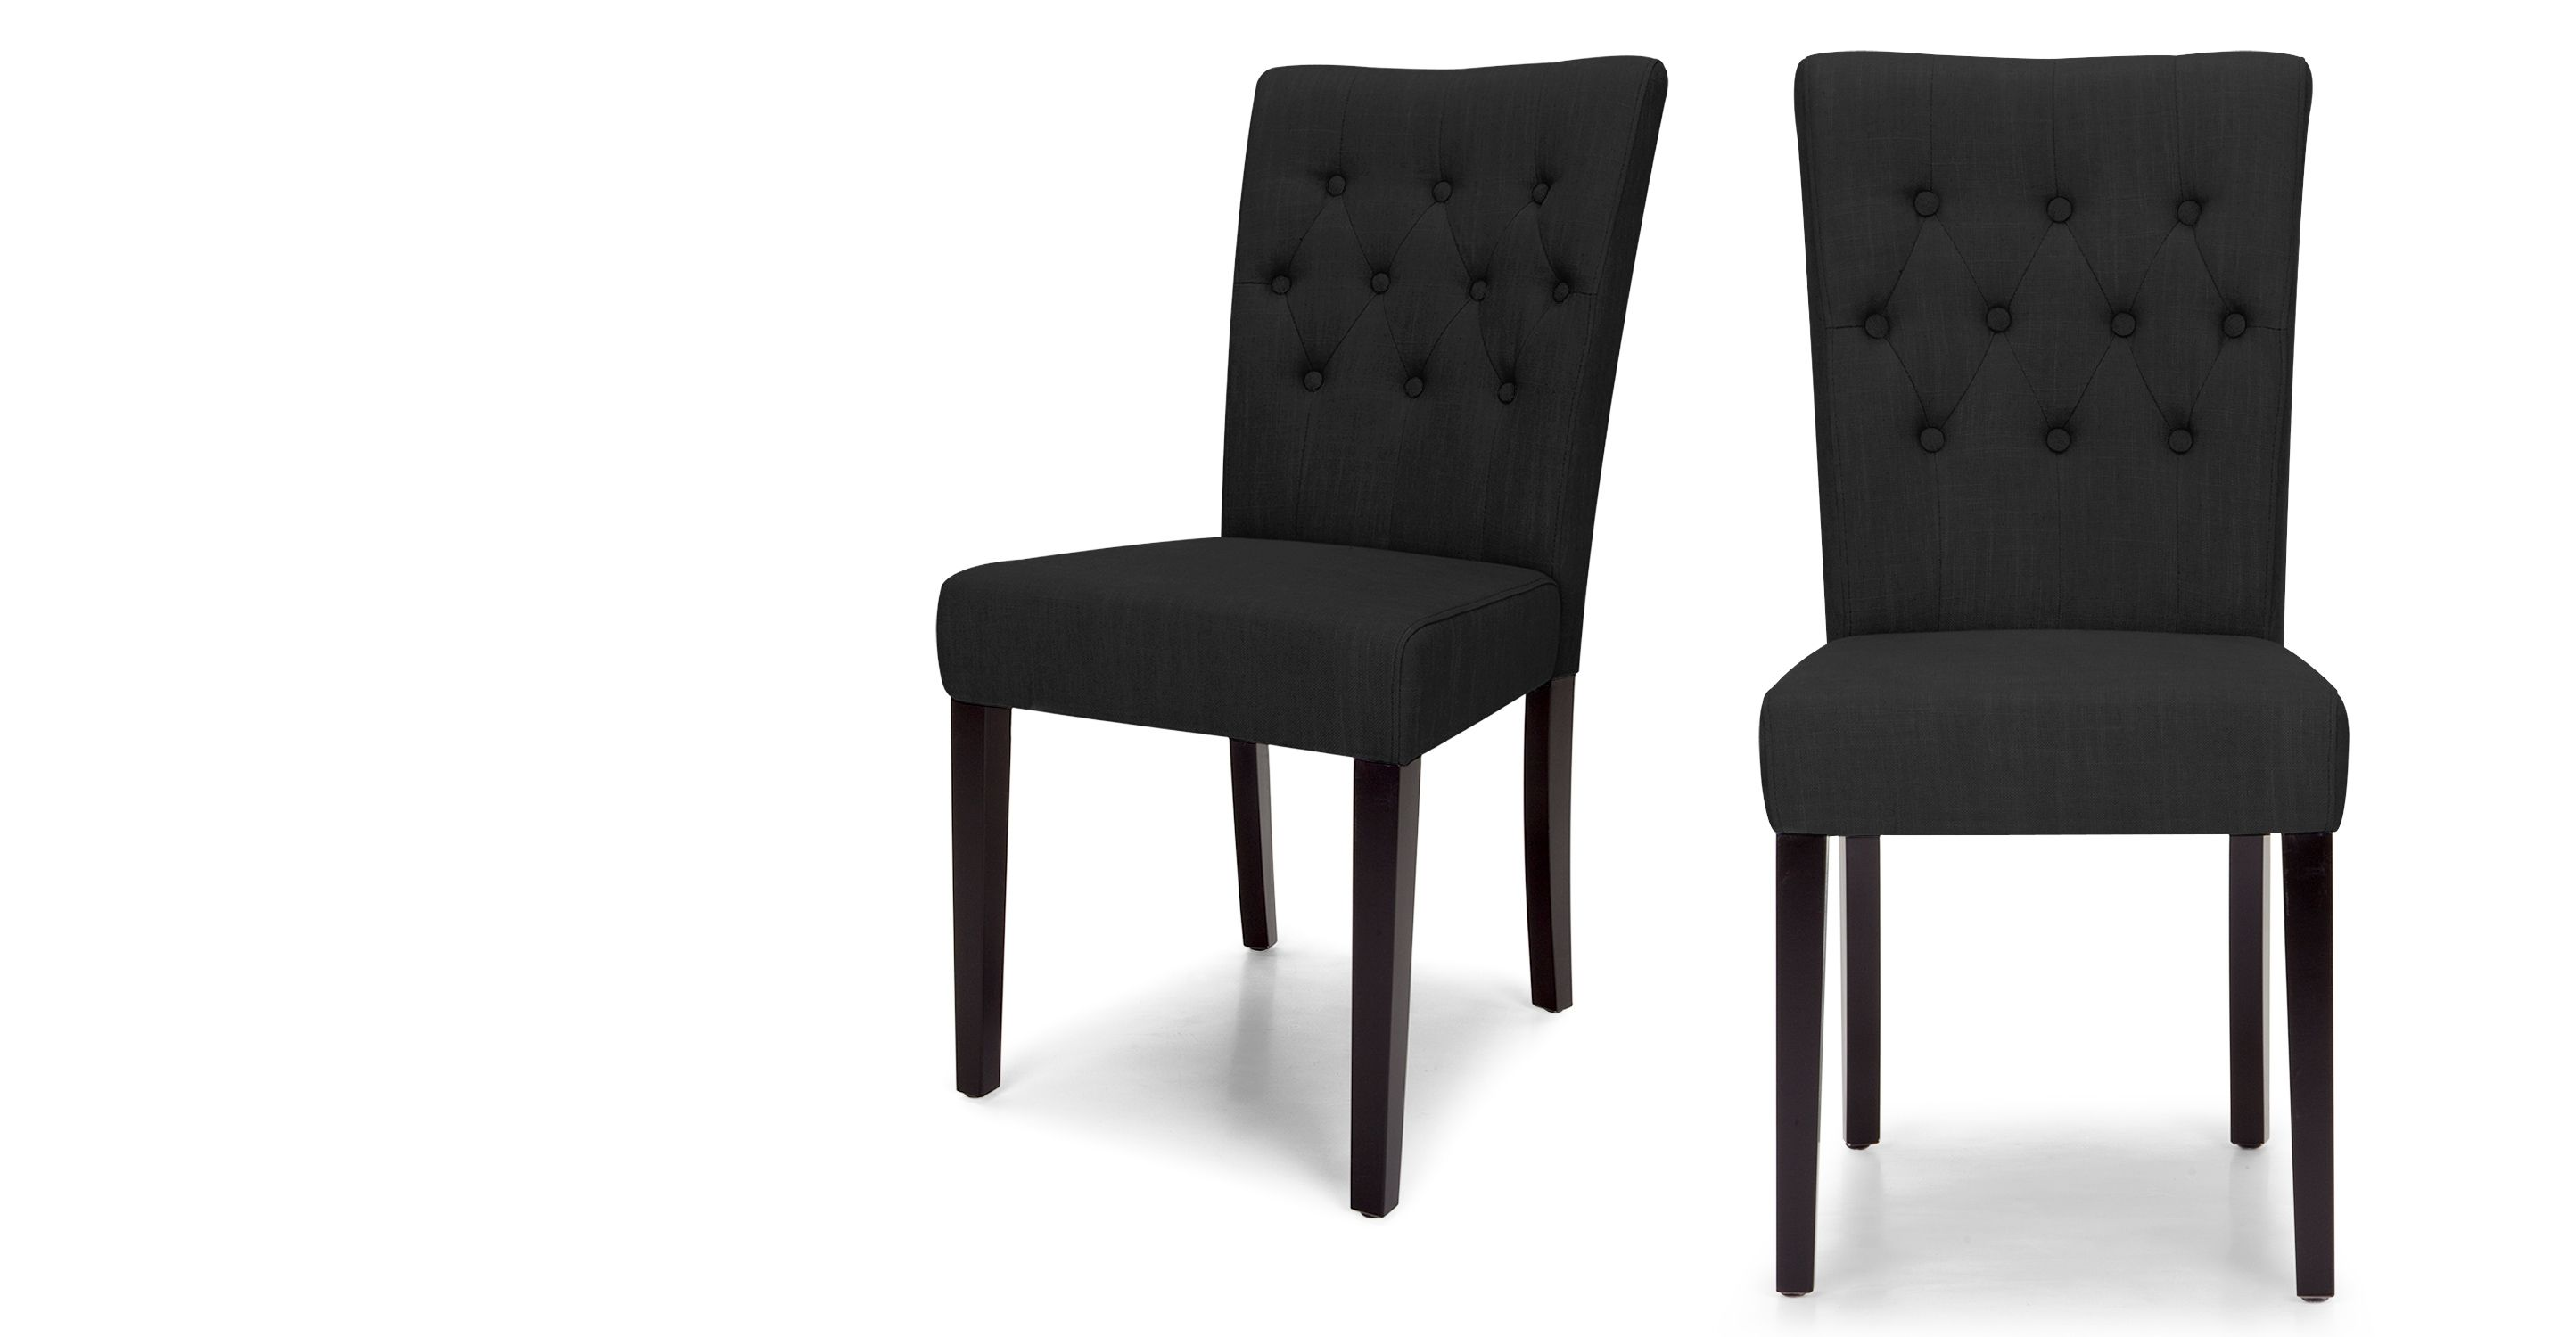 2 x flynn dining chairs, midnight black | kitchen ideas